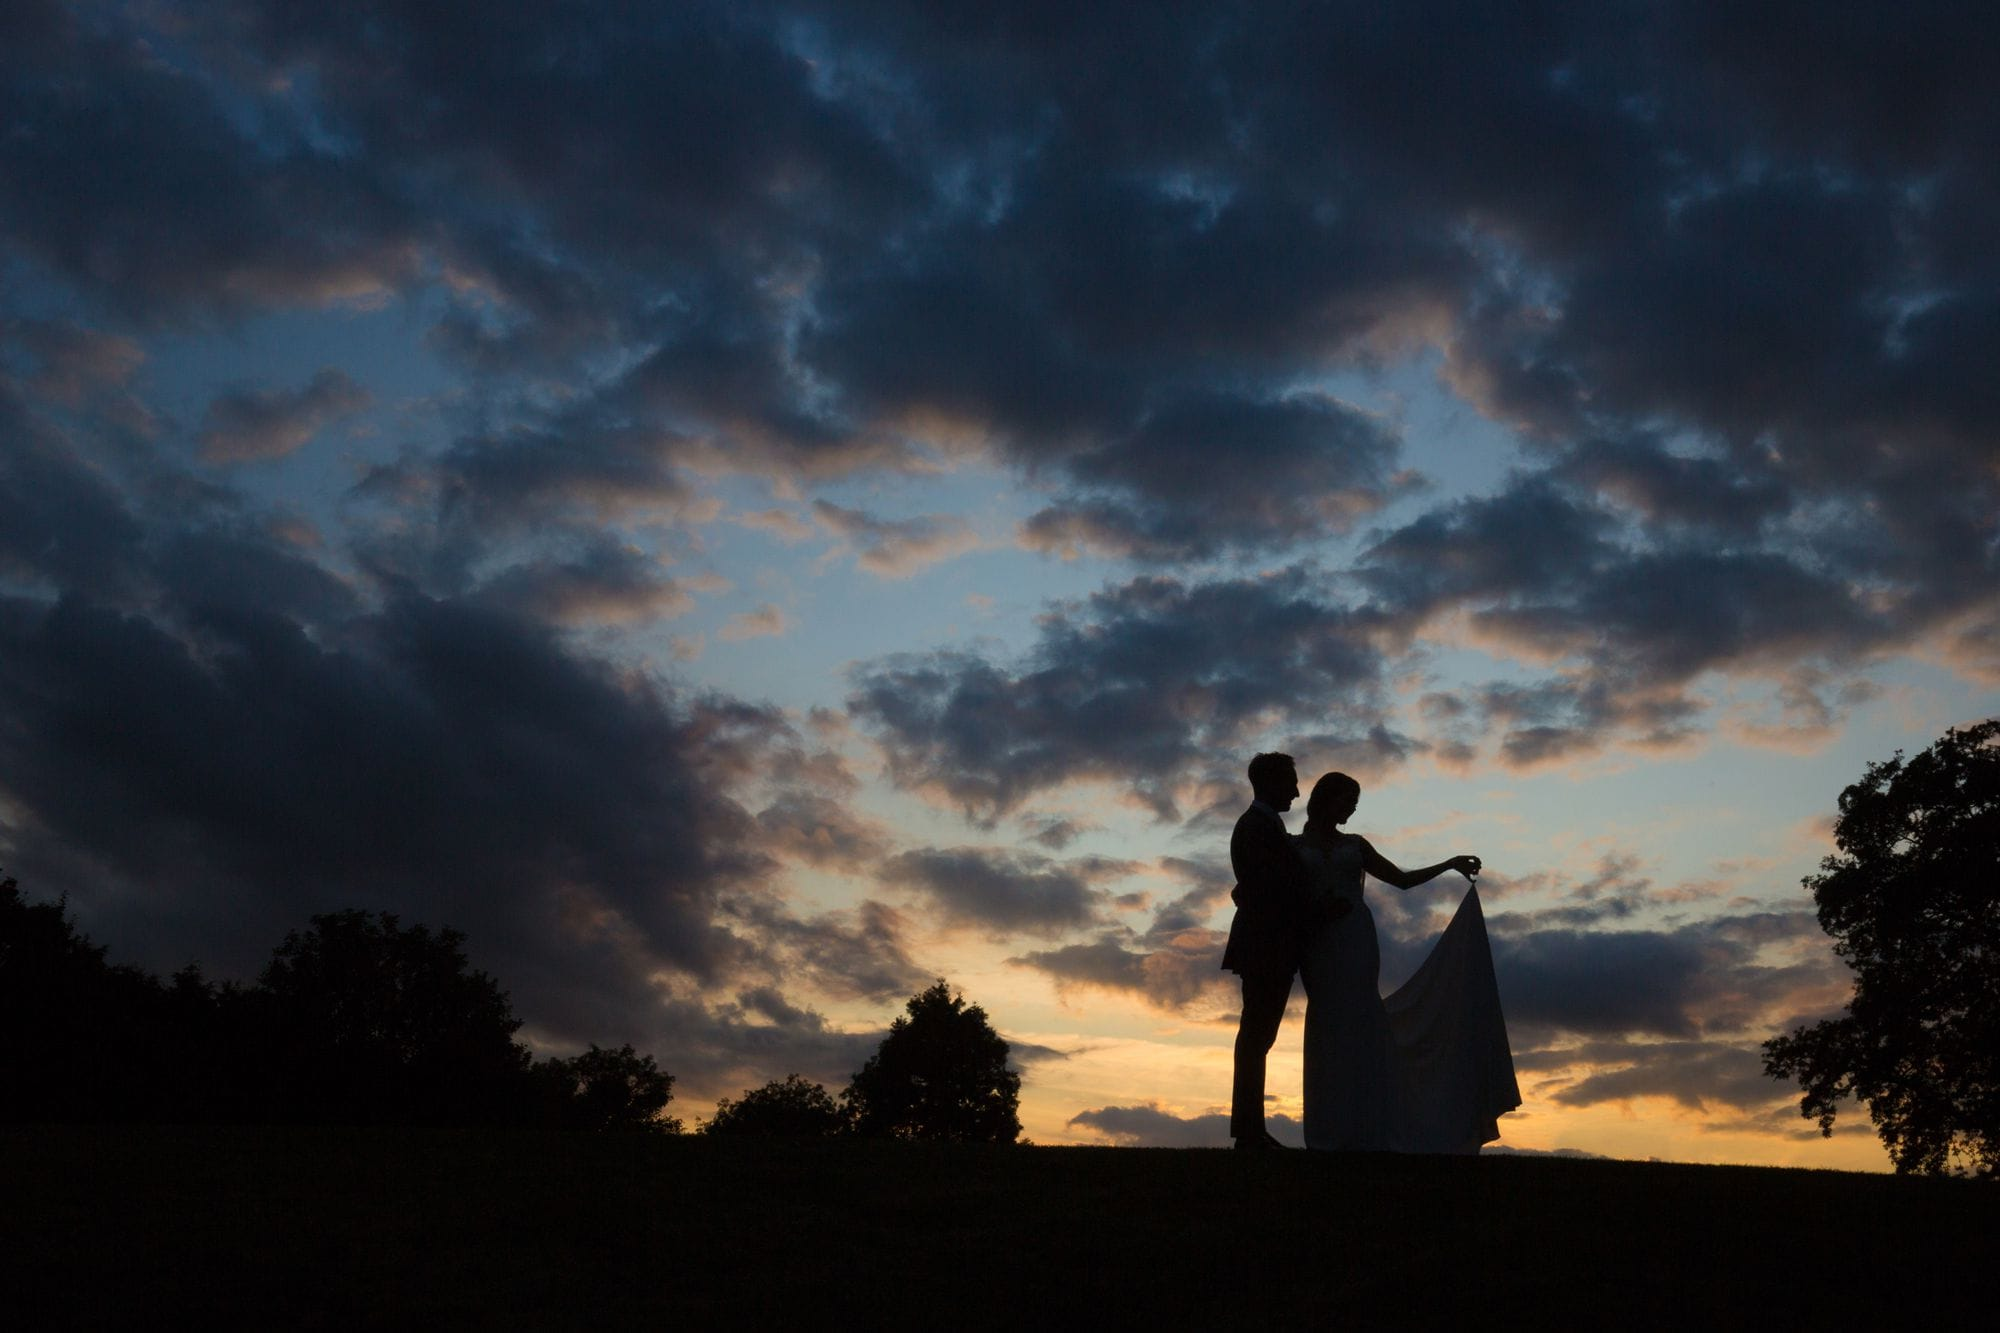 Silhoutte image of bride & groom